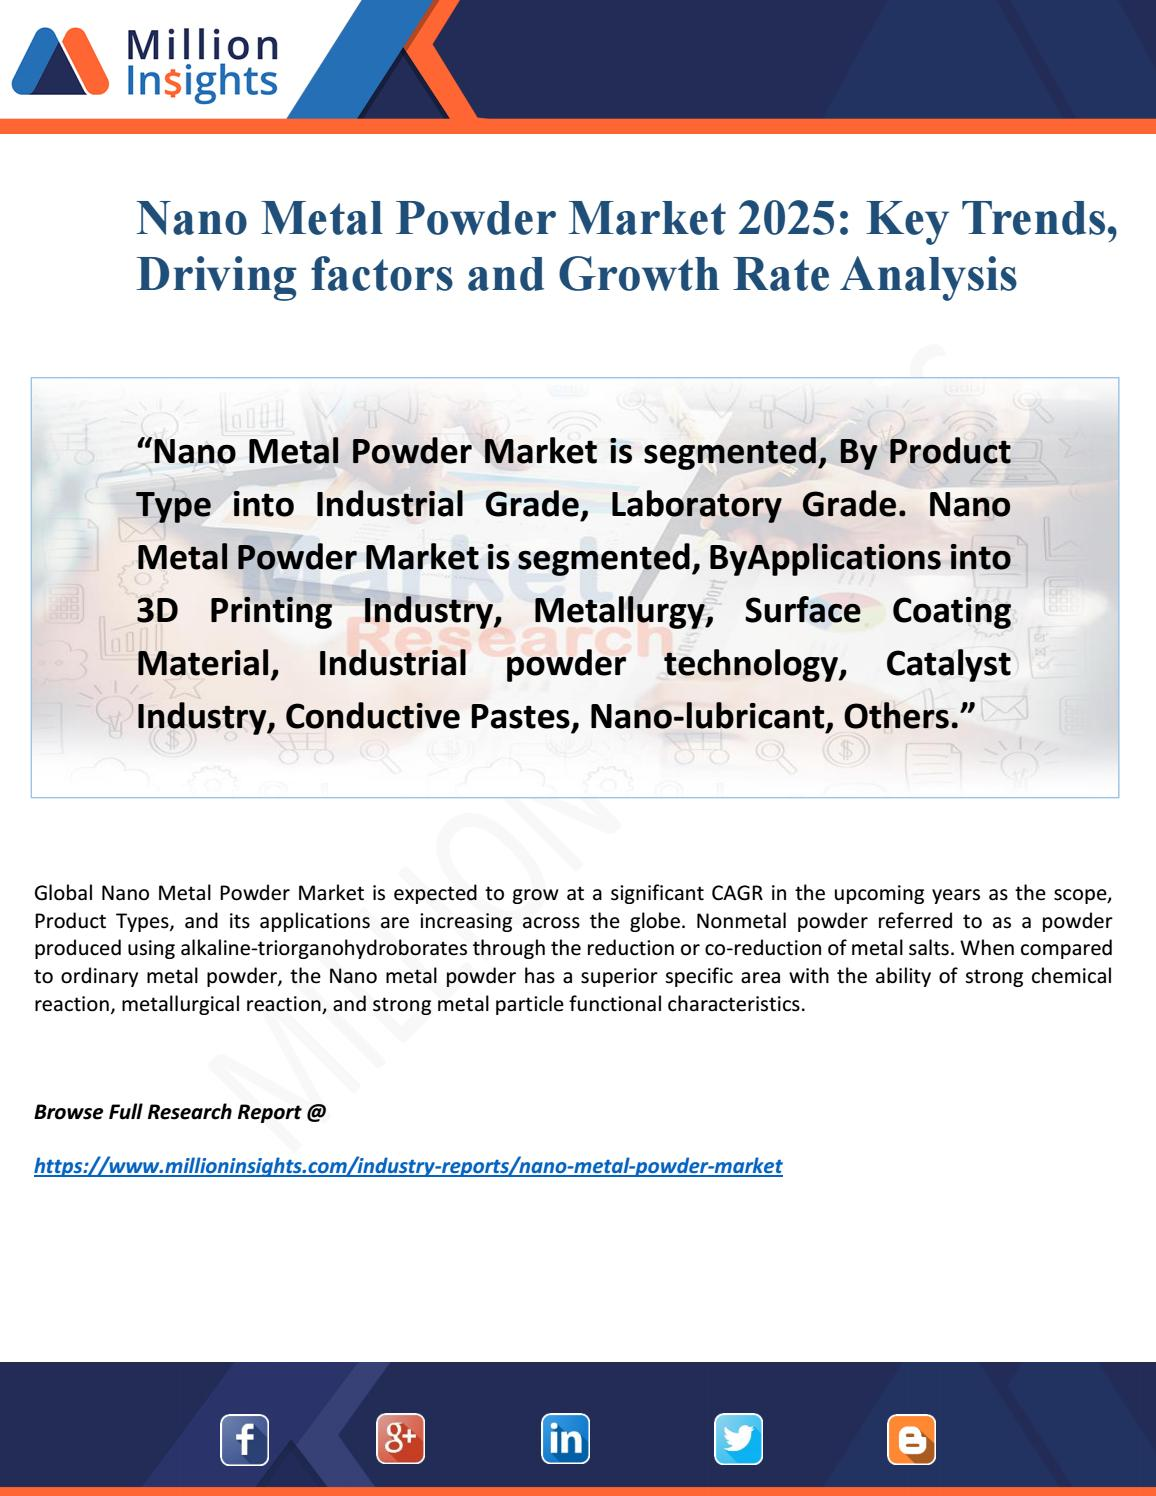 Nano Metal Powder Market 2025 Research Report by Top Trends, Drivers